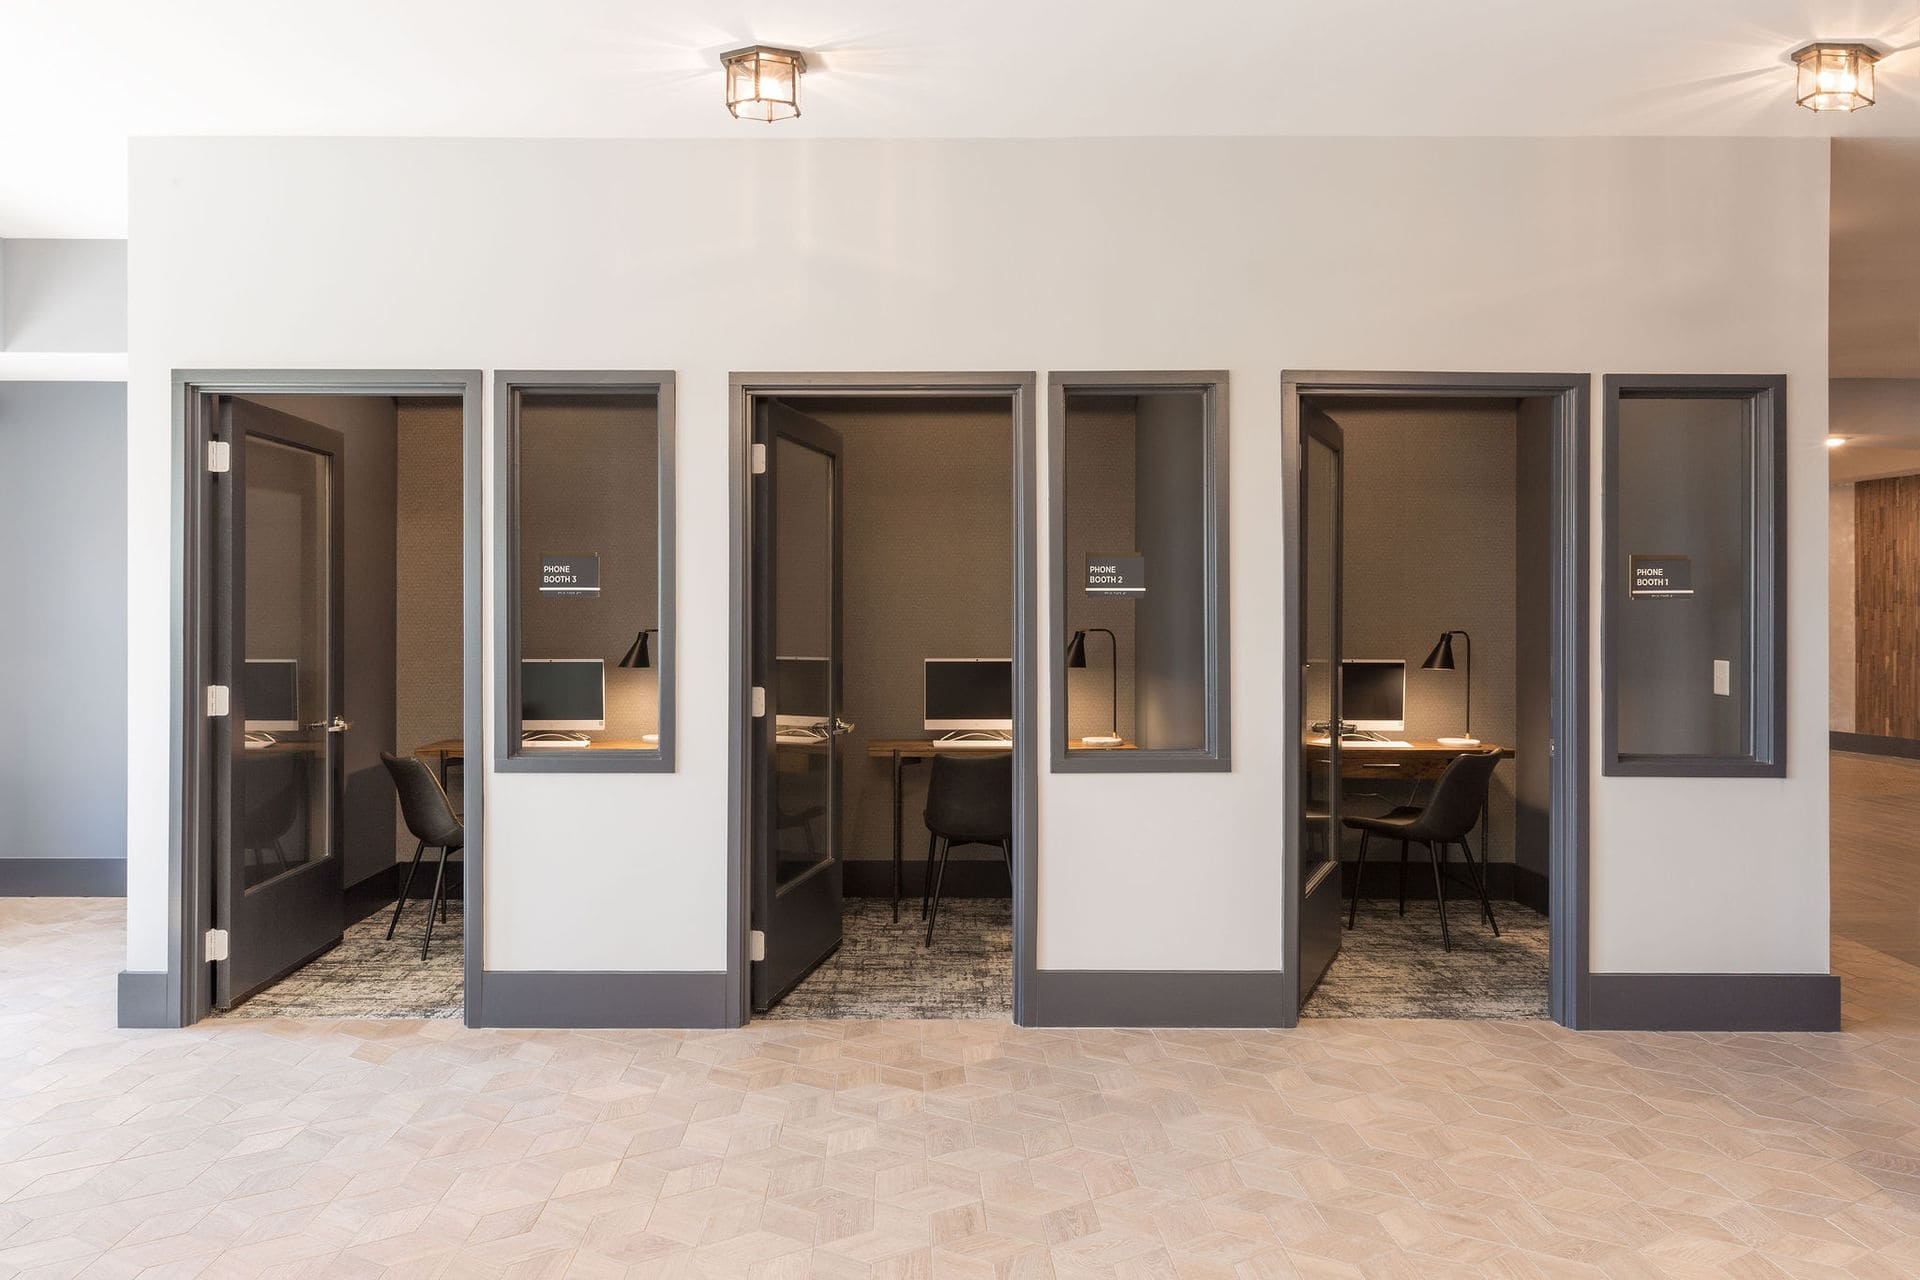 three office spaces